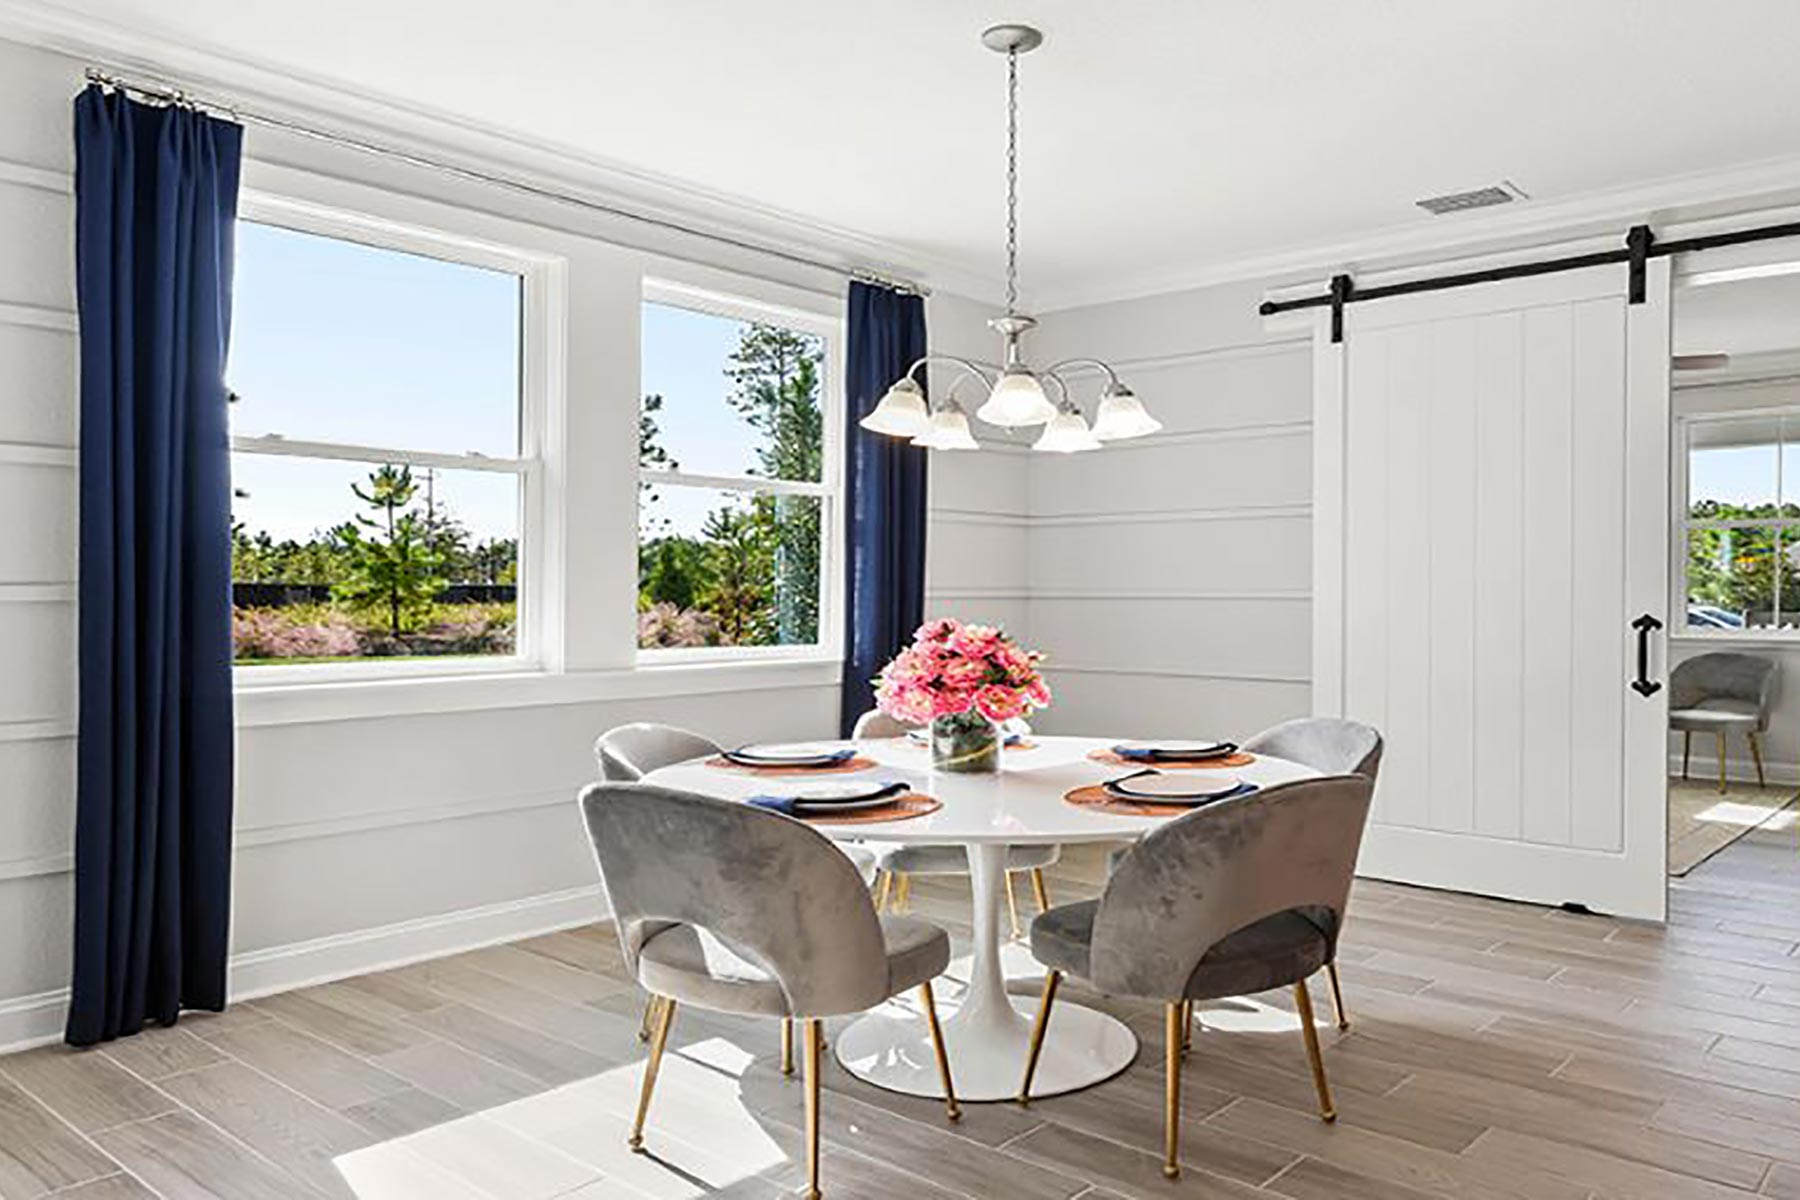 River Plan Dining at RiverTown - WaterSong in St. Johns Florida by Mattamy Homes